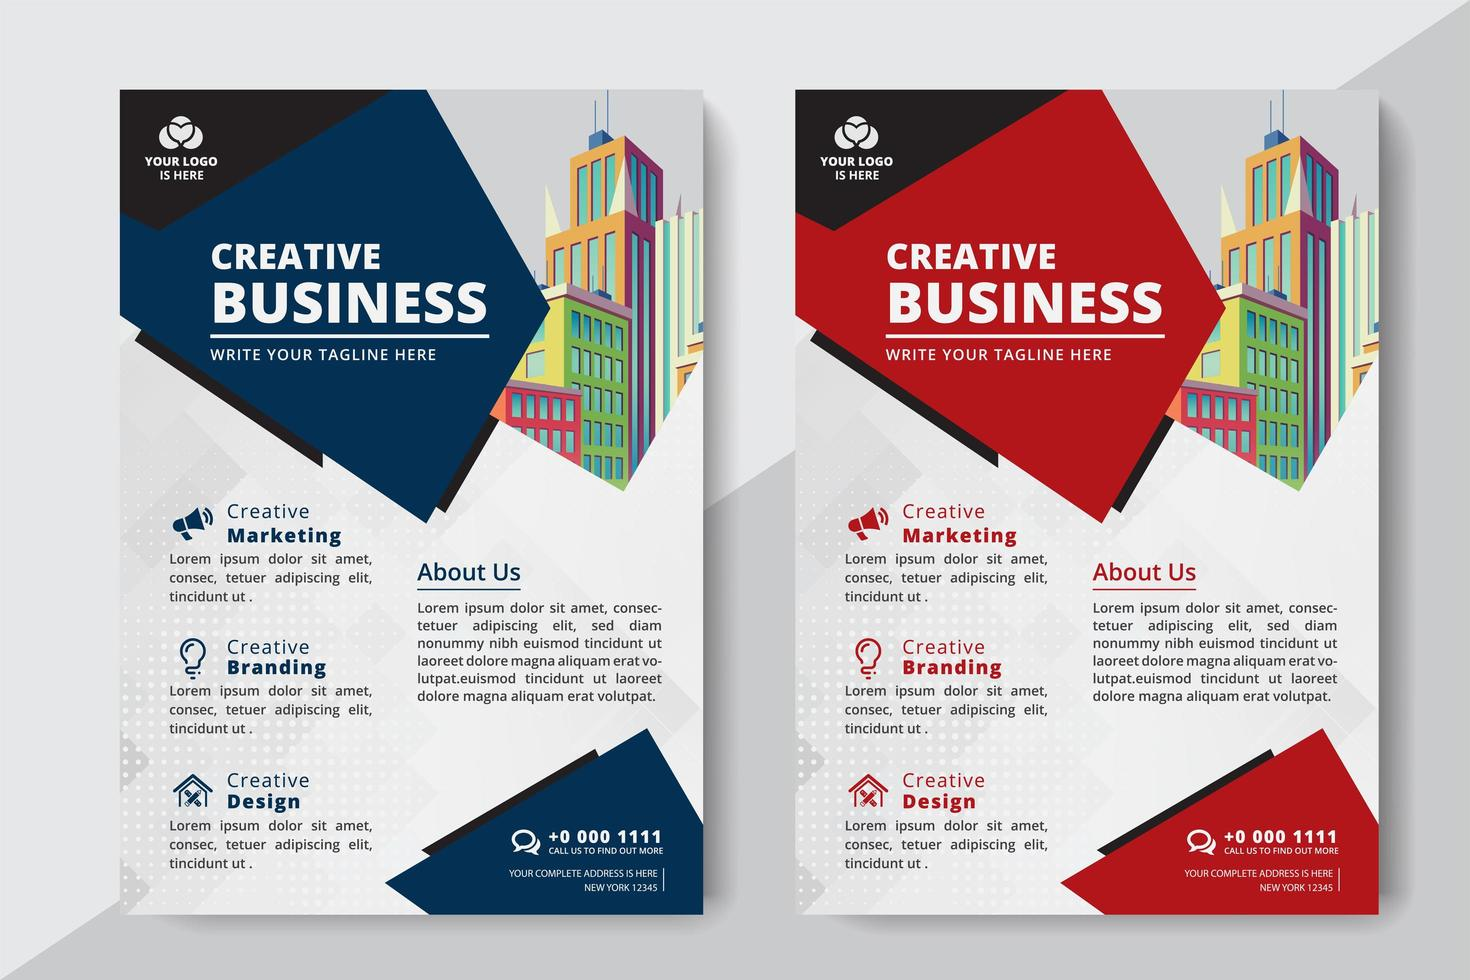 Business Flyer A4 Size 2 Flyers Red And Blue Color Download Free Vectors Clipart Graphics Vector Art